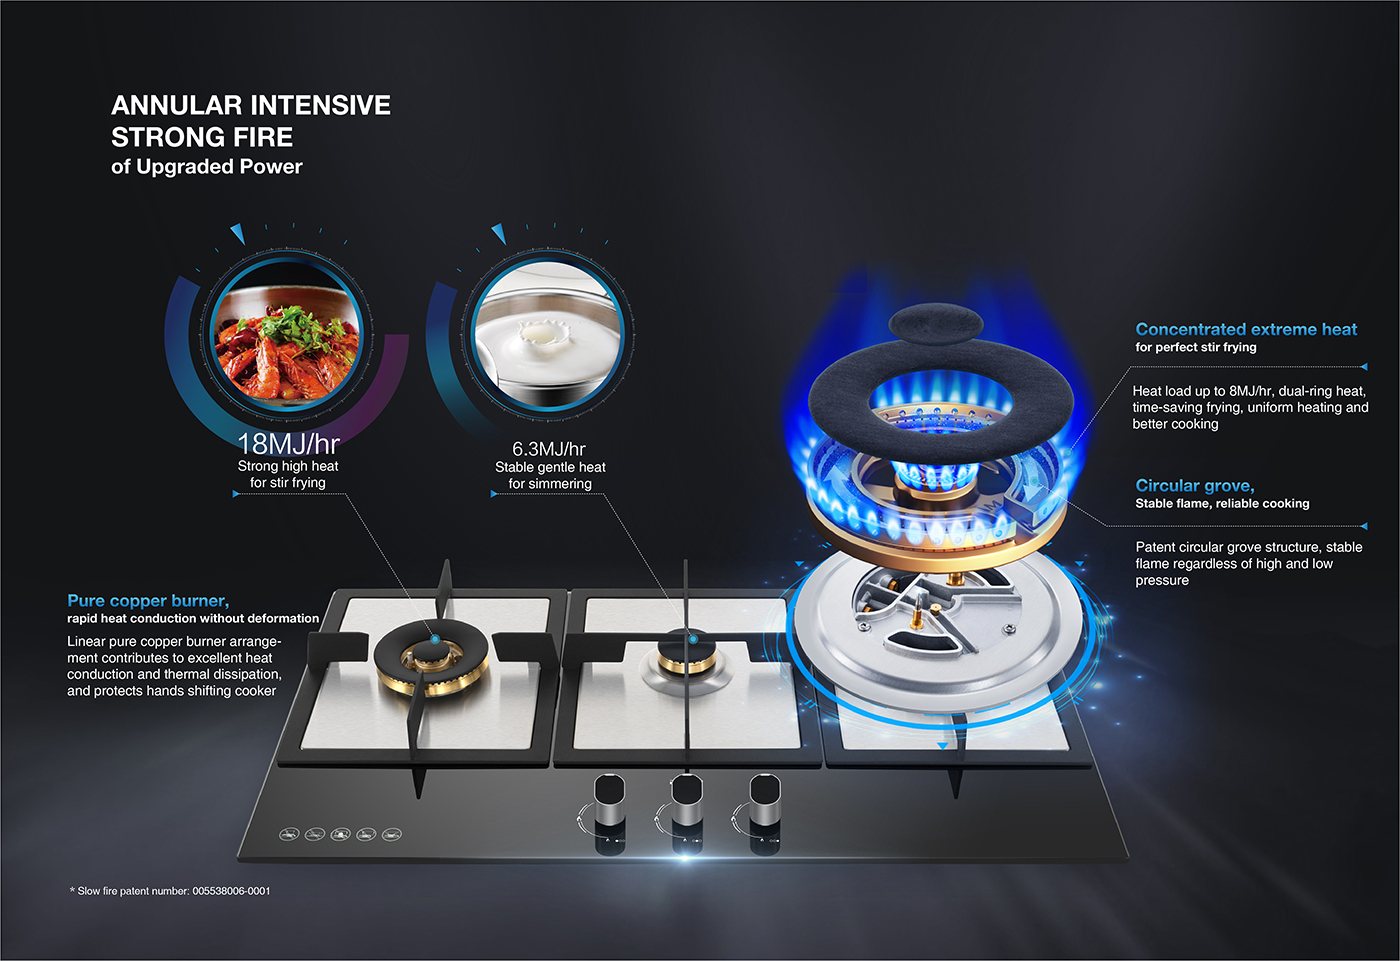 18MJ/hr annular intensive strong fire<br /> Greater power Better cooking<br /> ROBAM Brand-new upgraded super power gas stove B312<br /> ①Linear burner arrangement for hand protection<br /> ②Imported burner for greater heat<br /> ③Cut-off protection for reliable safety